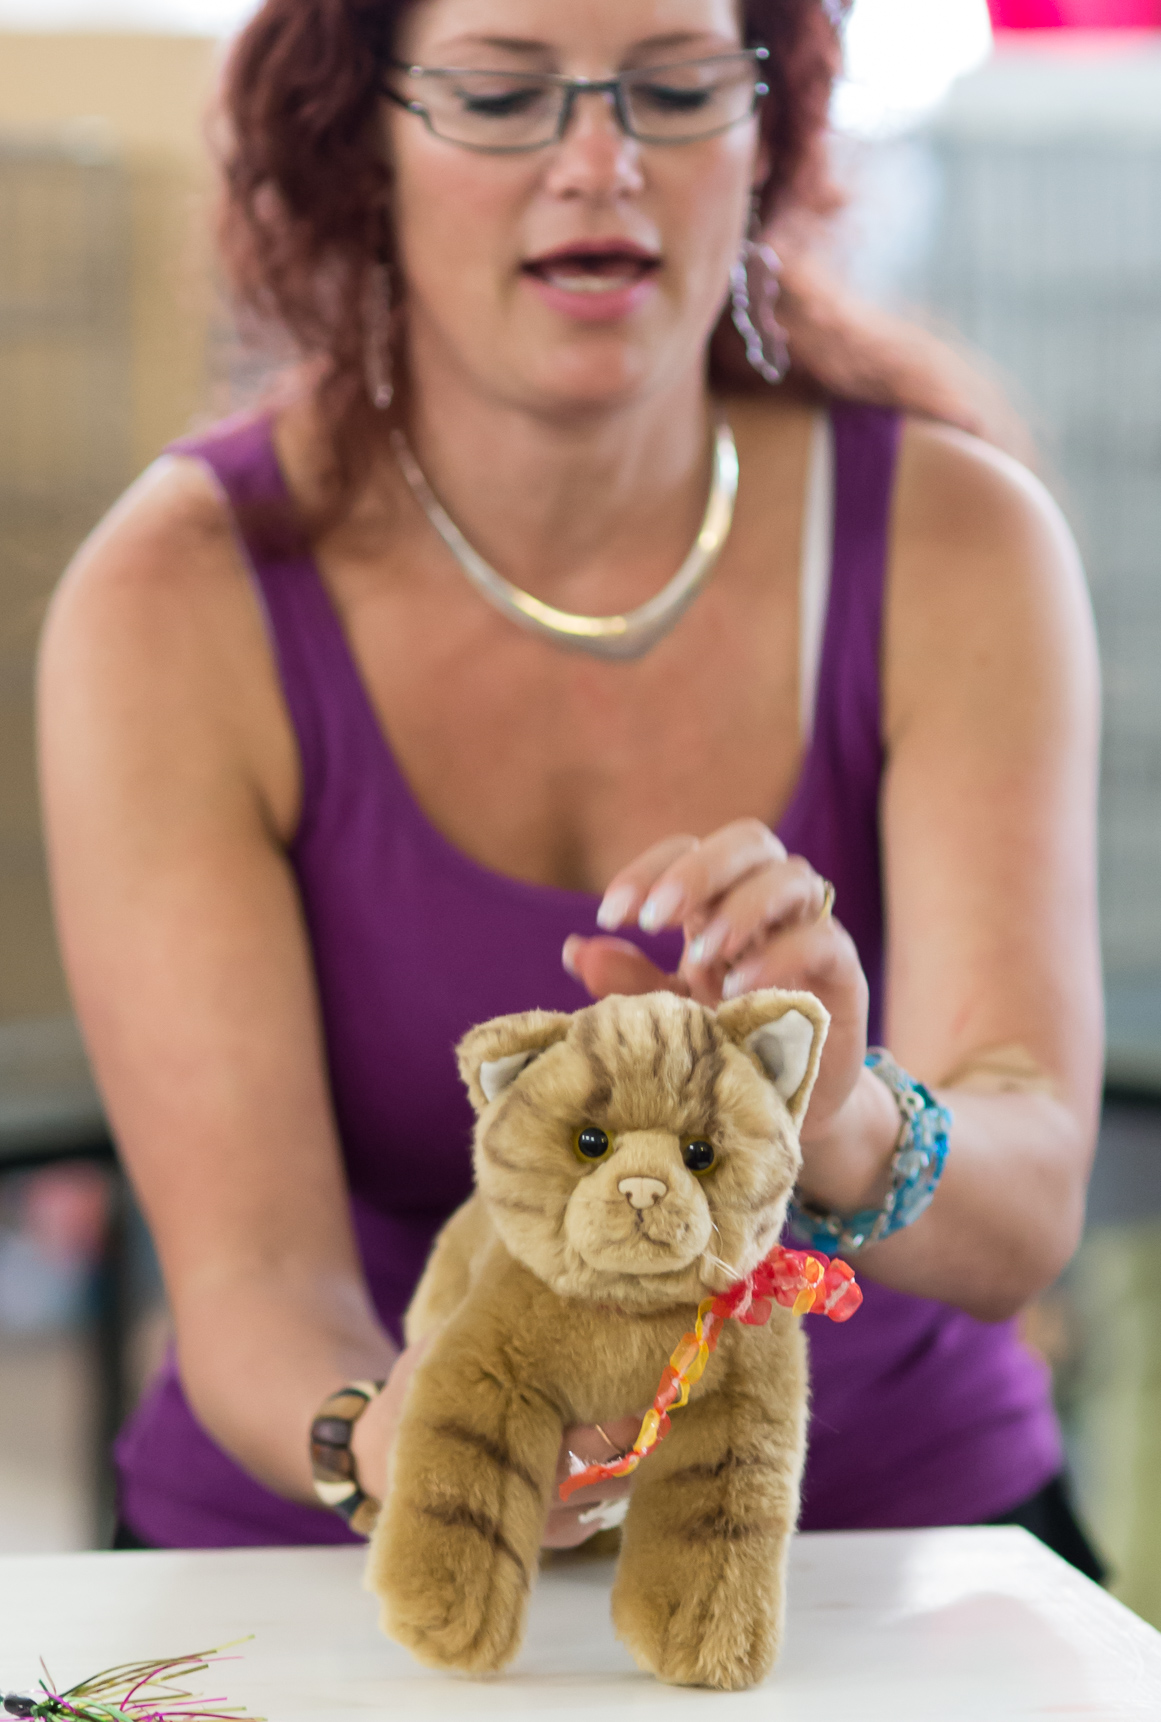 the toy cat contest, photo 223104, 2014-07-12